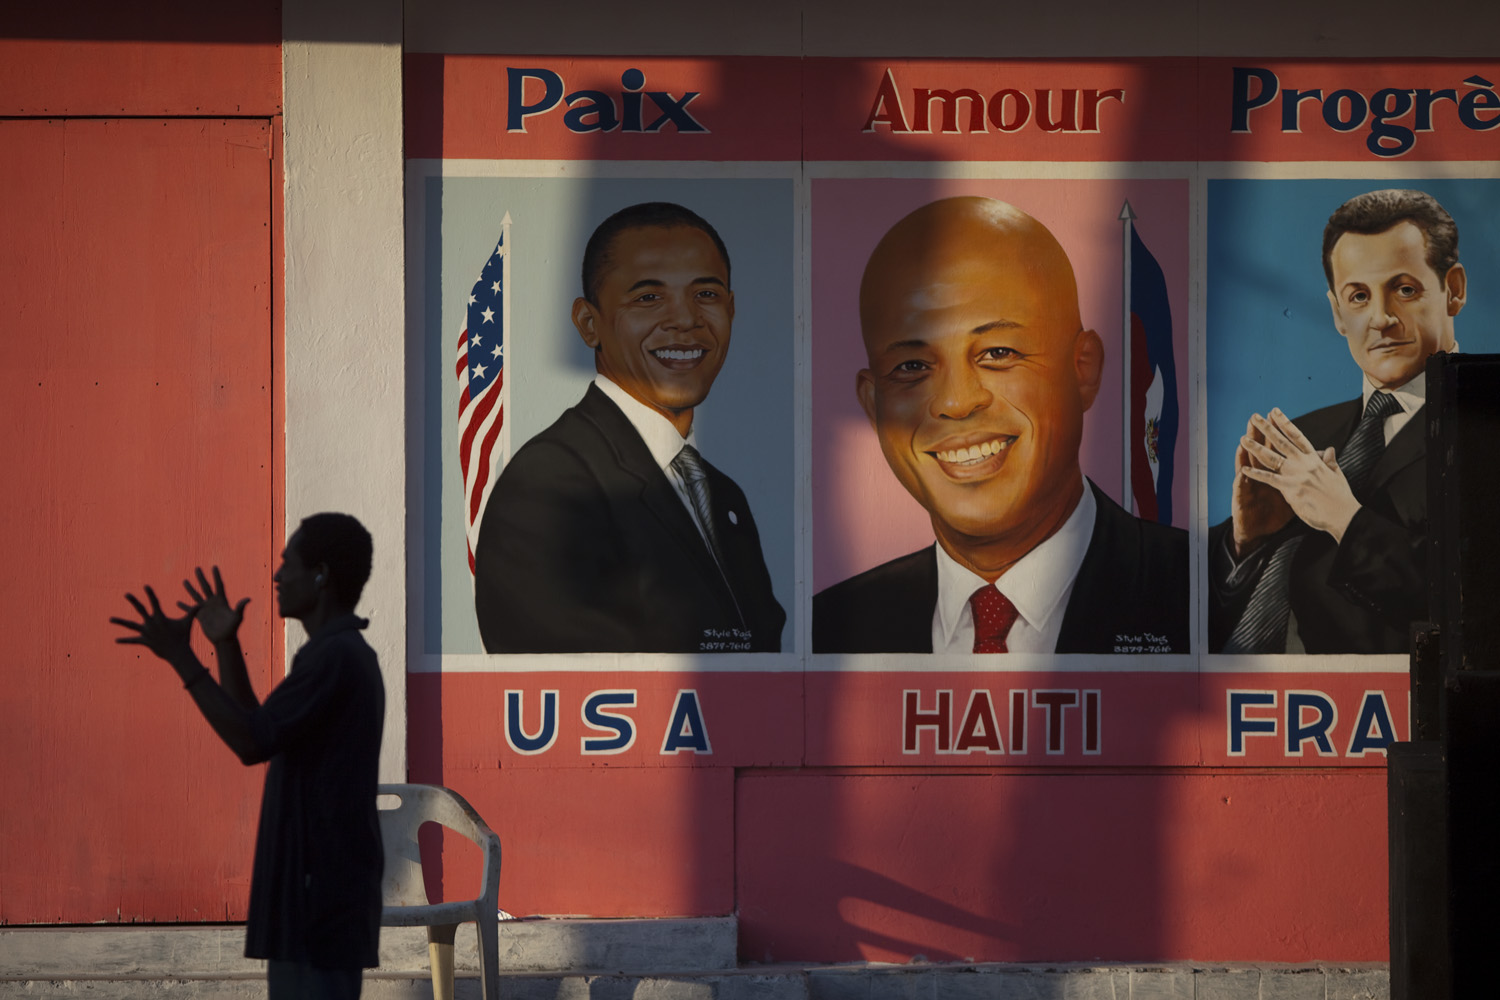 May 14, 2011. A man claps his hands in front of a new painting depicting three presidents on inauguration day for newly-elected Haitian President Michel Martelly in the Petionville neighborhood of Port-au-Prince, Haiti.